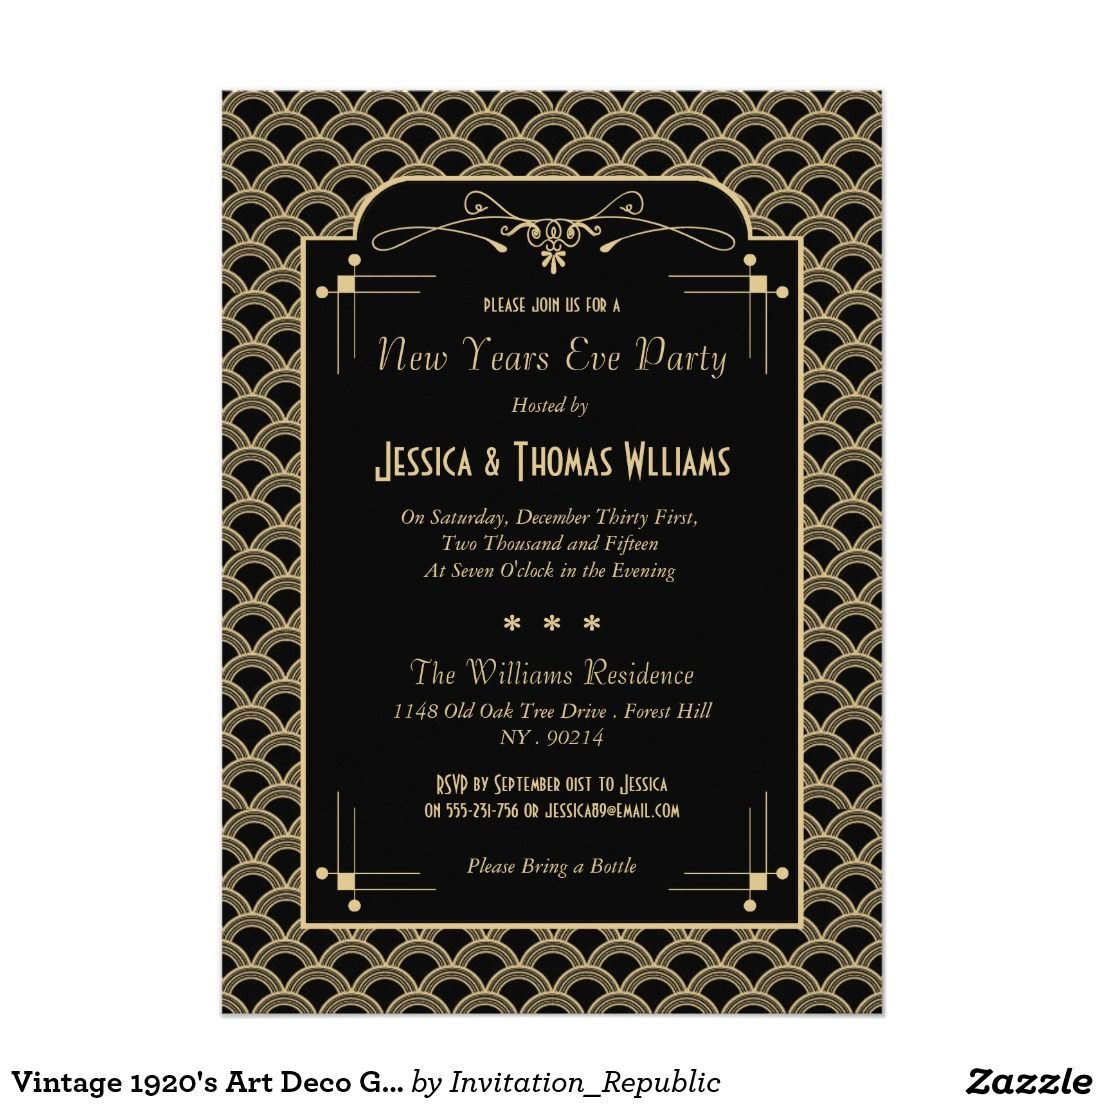 Vintage 1920s art deco gatsby new years eve party card zazzle vintage 1920s art deco gatsby new years eve party card zazzle stopboris Choice Image